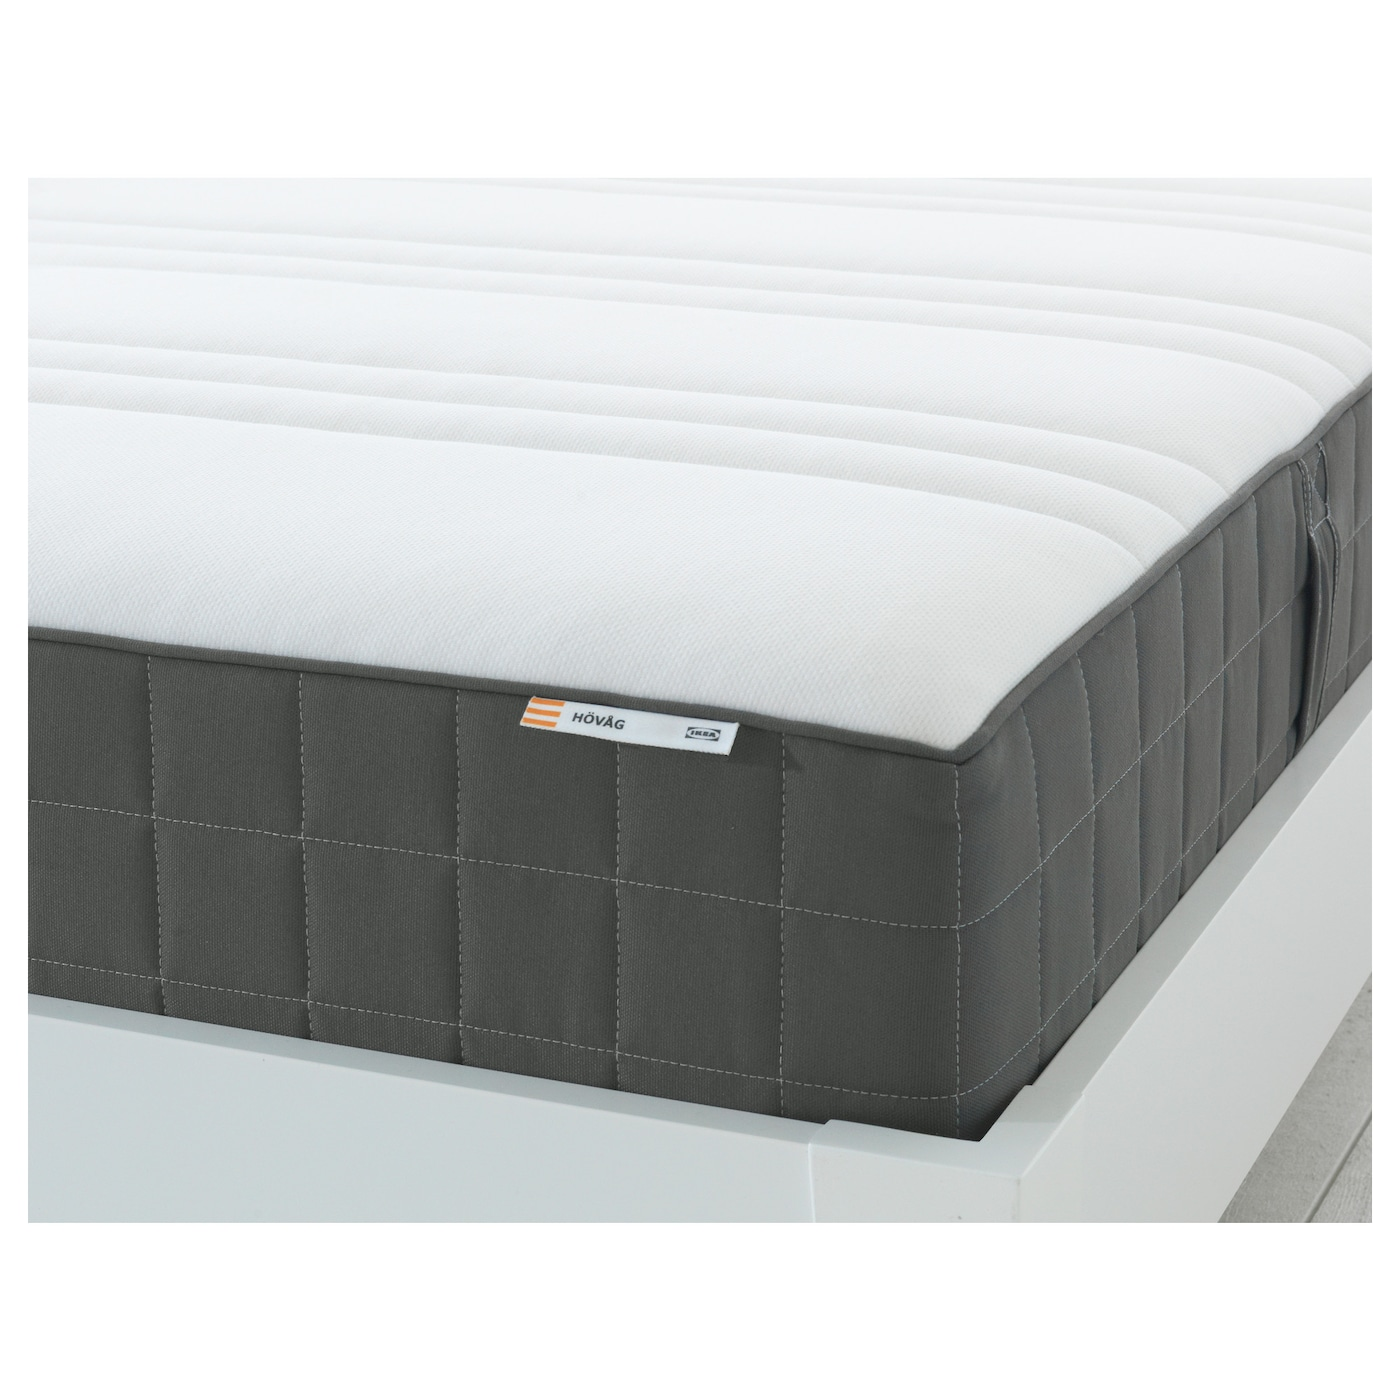 toppers protector firm mattresses en rlmalva cm mattress p ikea products moshult white gb foam art